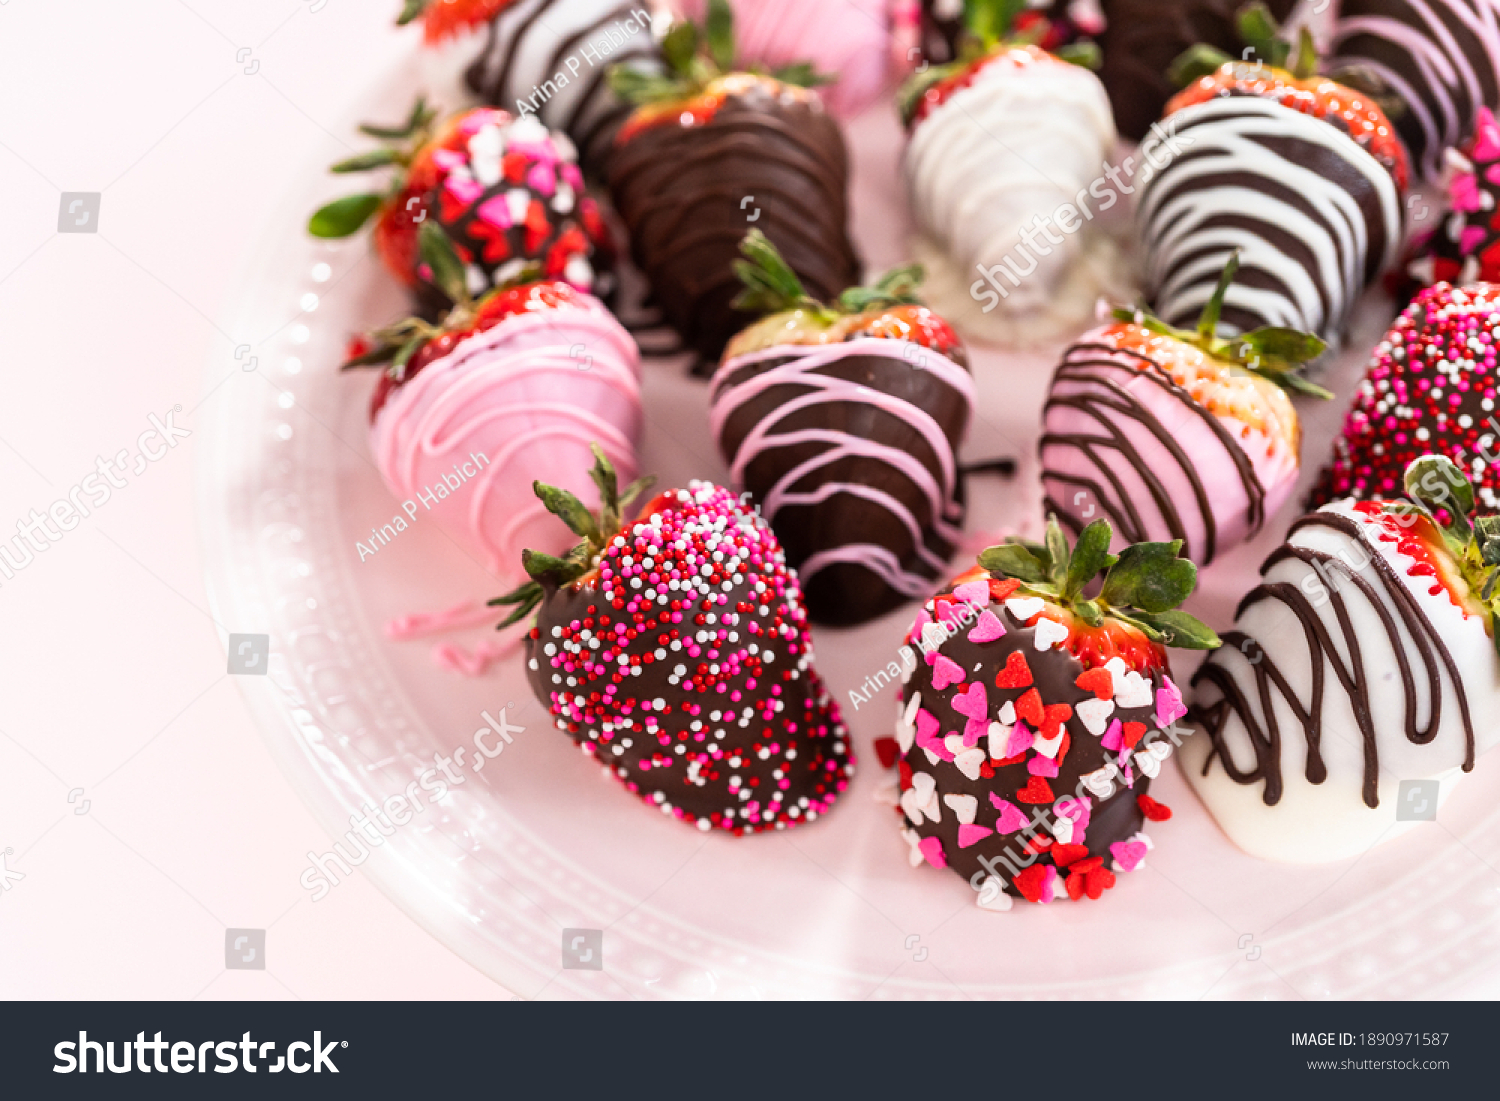 Variety of chocolate dipped strawberries on a pink cake stand. #1890971587